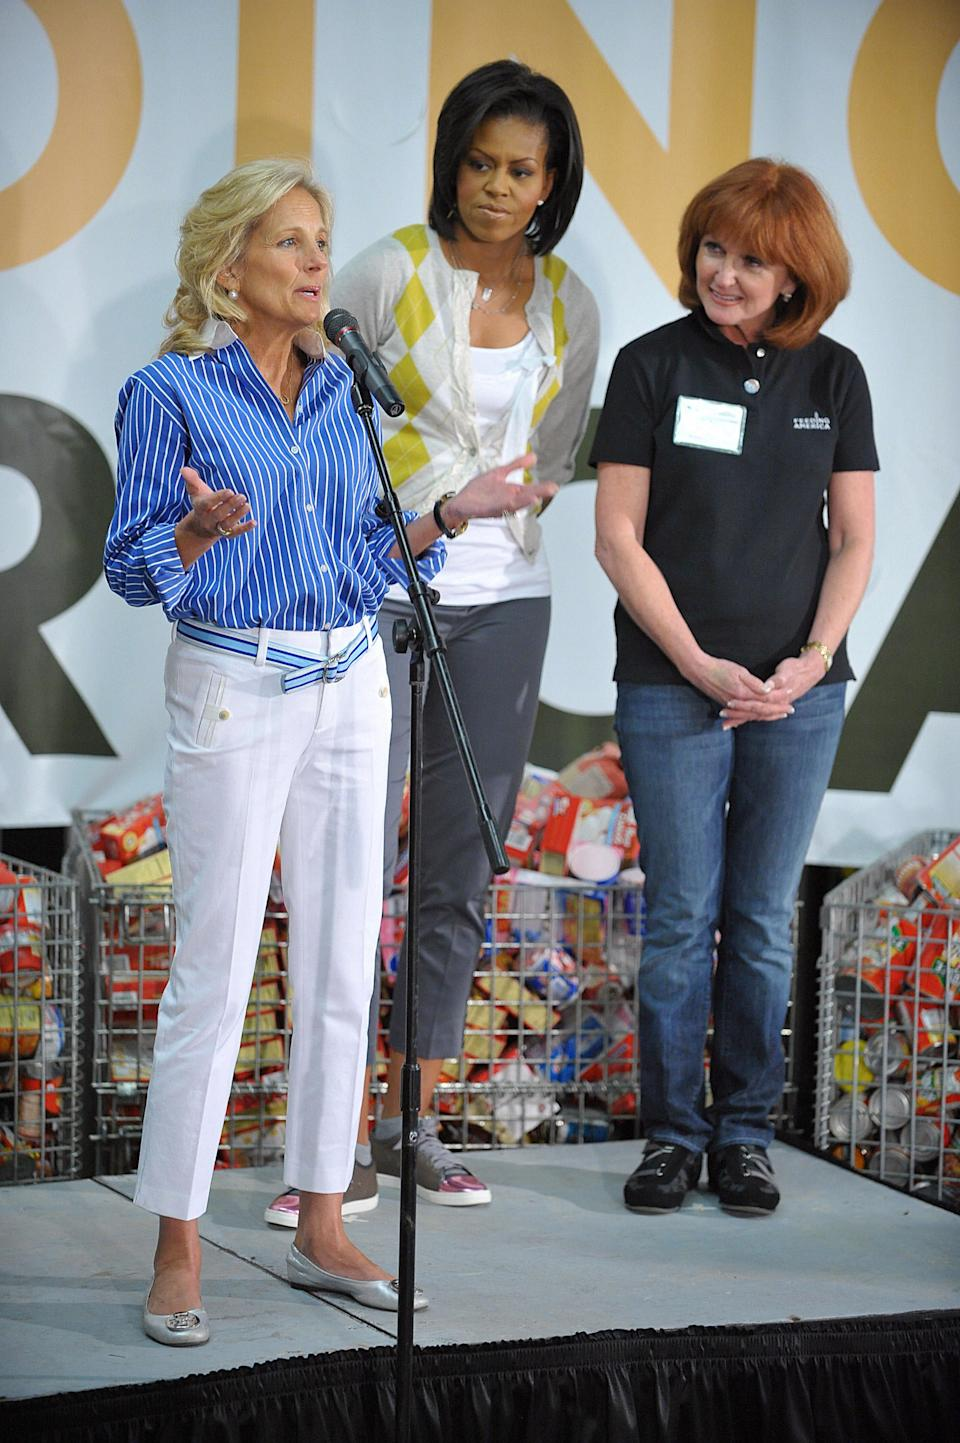 Jill Biden nails preppy casual alongside Michelle Obama and Vicki Escarra president and CEO of Feeding America on April 29, 2009AFP via Getty Images